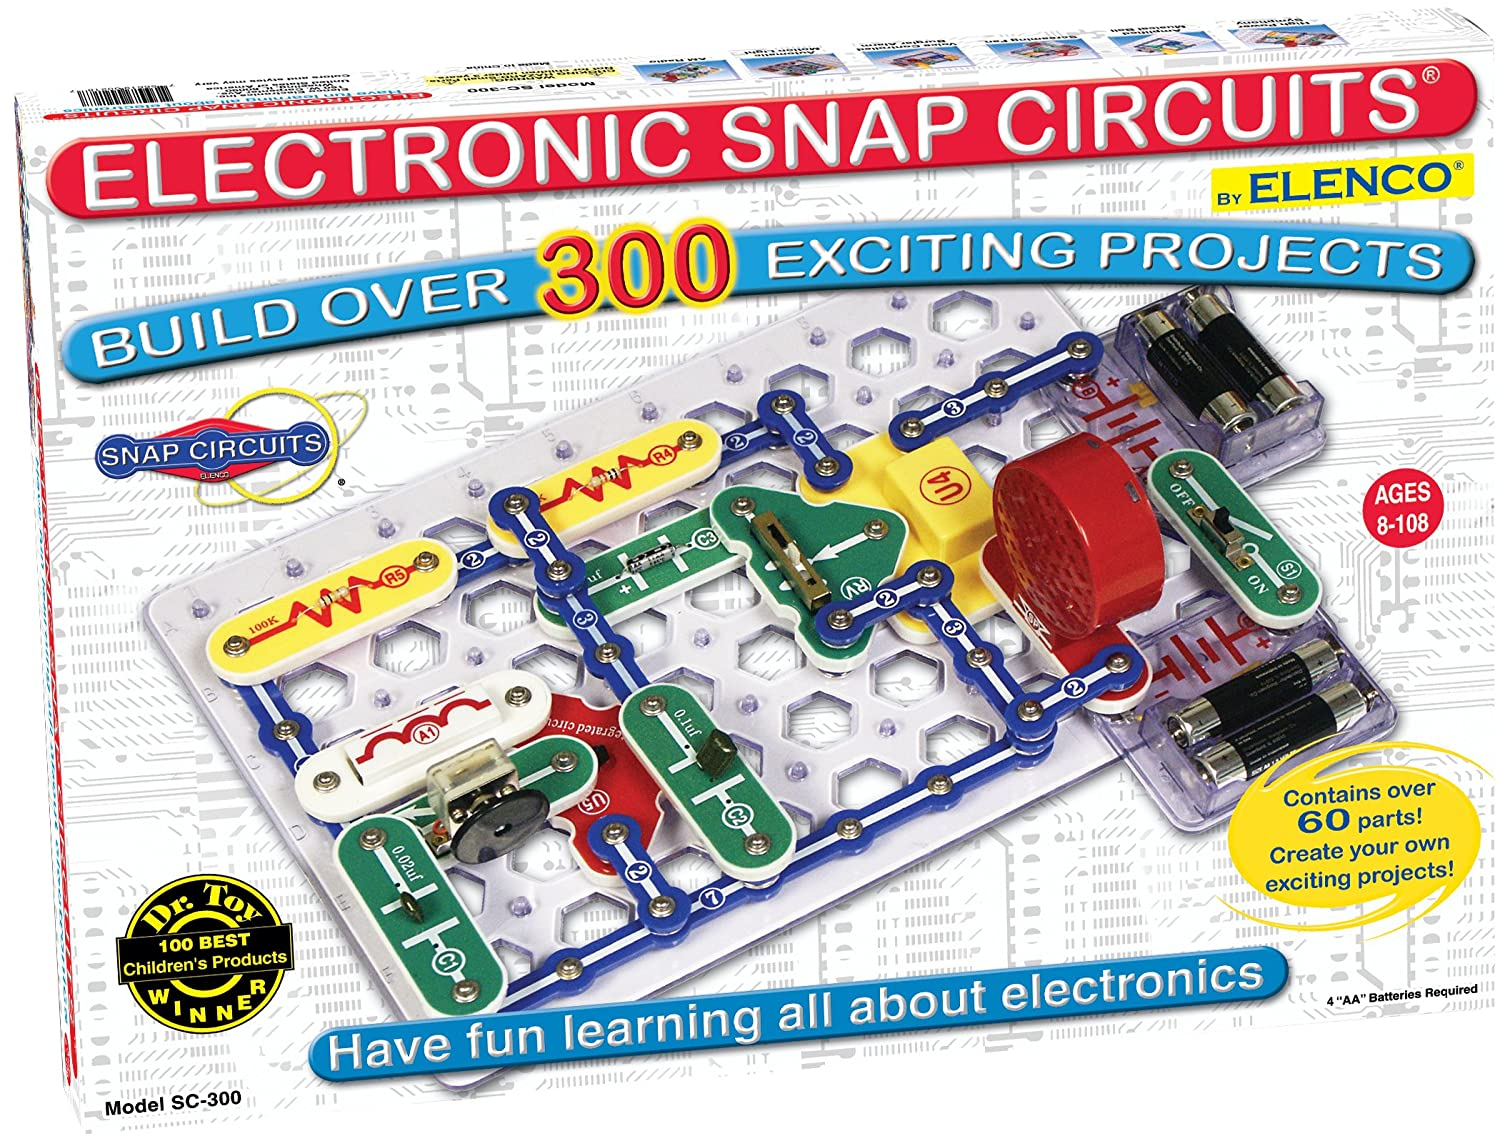 Snap Circuits Classic Sc 300 Electronics Exploration Kit Series Circuit Advanced Over Stem Projects 4 Color Project Manual 60 Modules Unlimited Fun